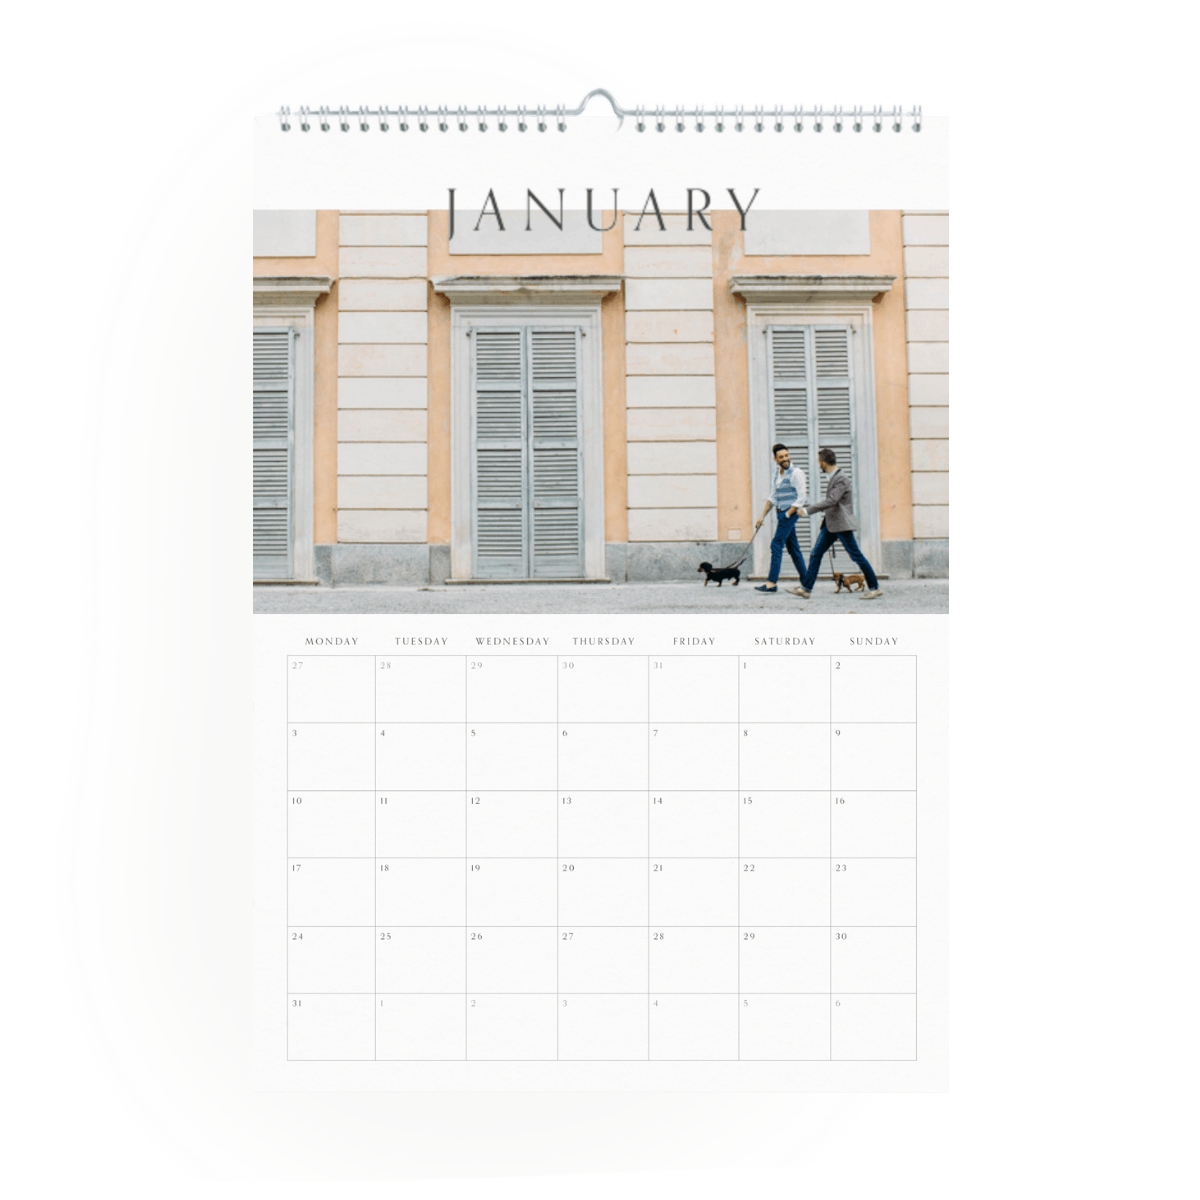 Https%3a%2f%2fwww.papier.com%2fproduct image%2f89399%2f76%2f2020 photo calendar 22424 january 1570713350.png?ixlib=rb 1.1